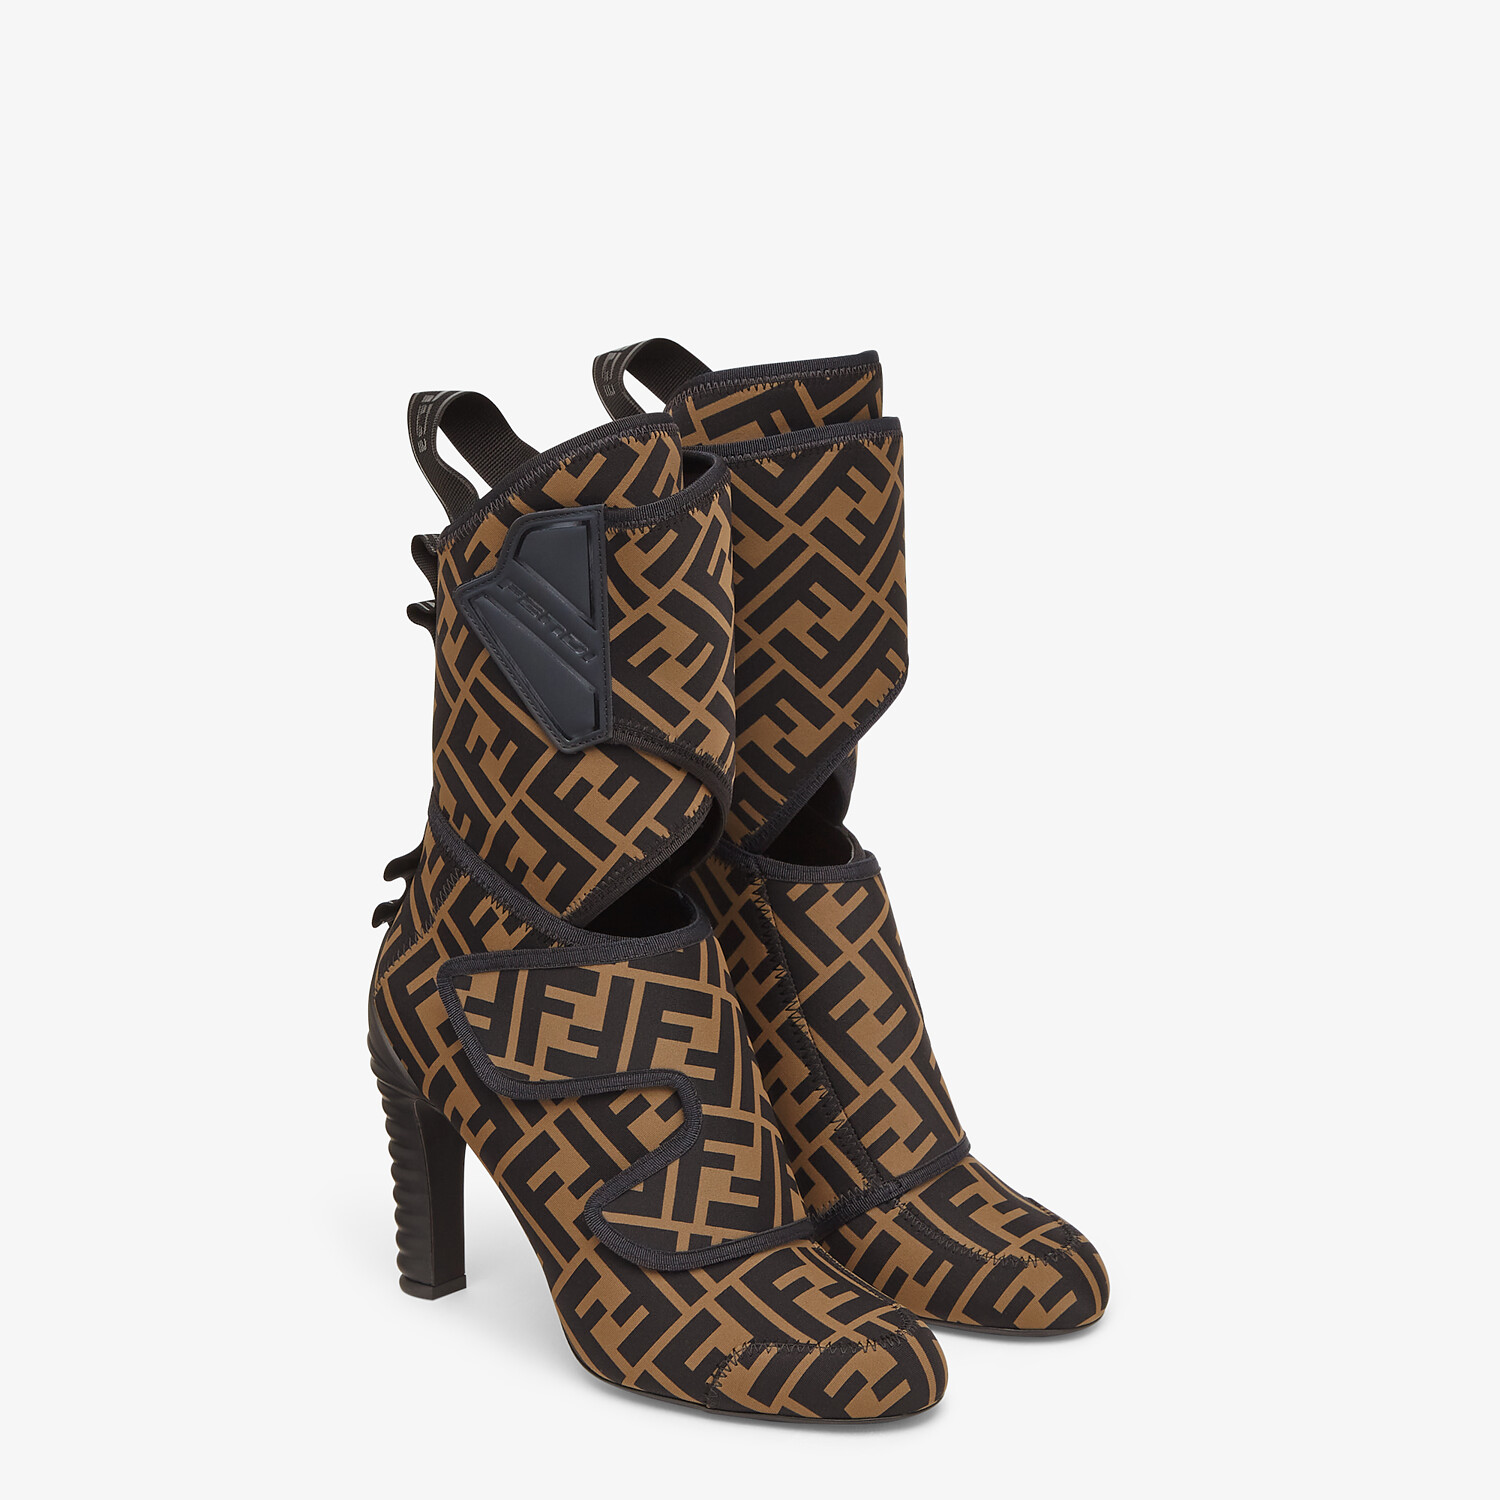 FENDI ANKLE BOOTS - Promenade Booties in brown fabric - view 4 detail